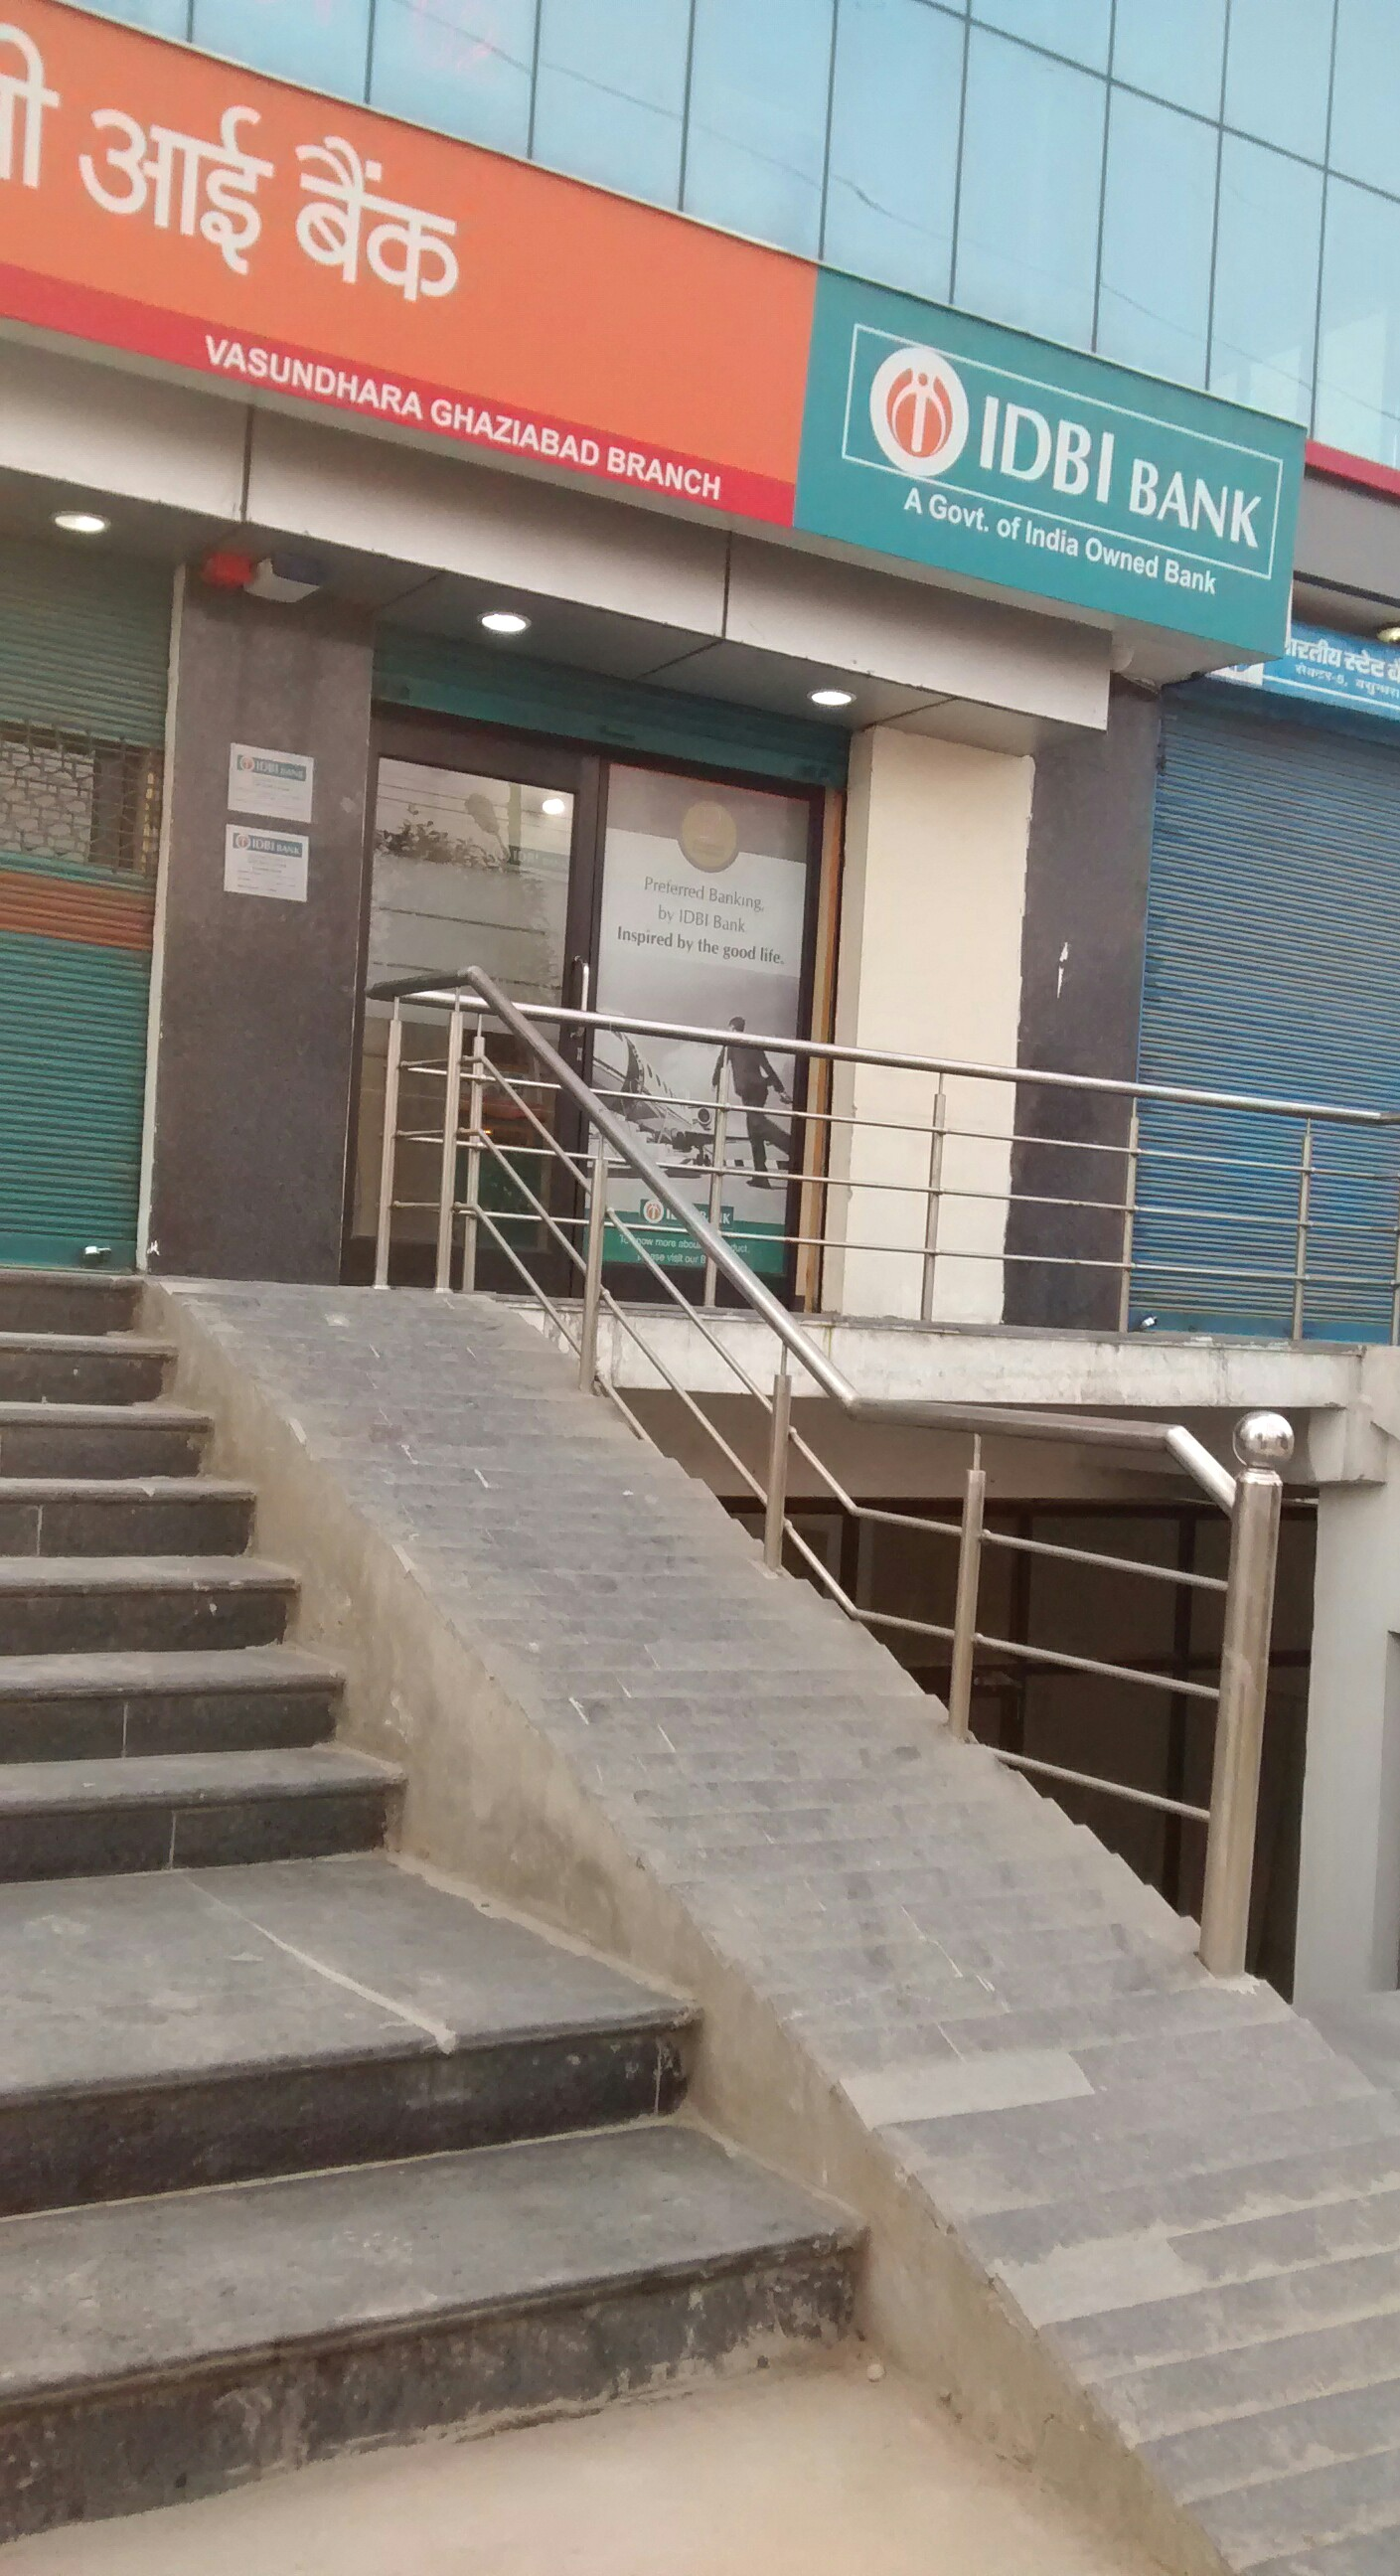 A steeeeeeeeeeep ramp at IDBI bank, sector 5, Vasundhara, Ghaziabad, UP. Mount Everest for anyone